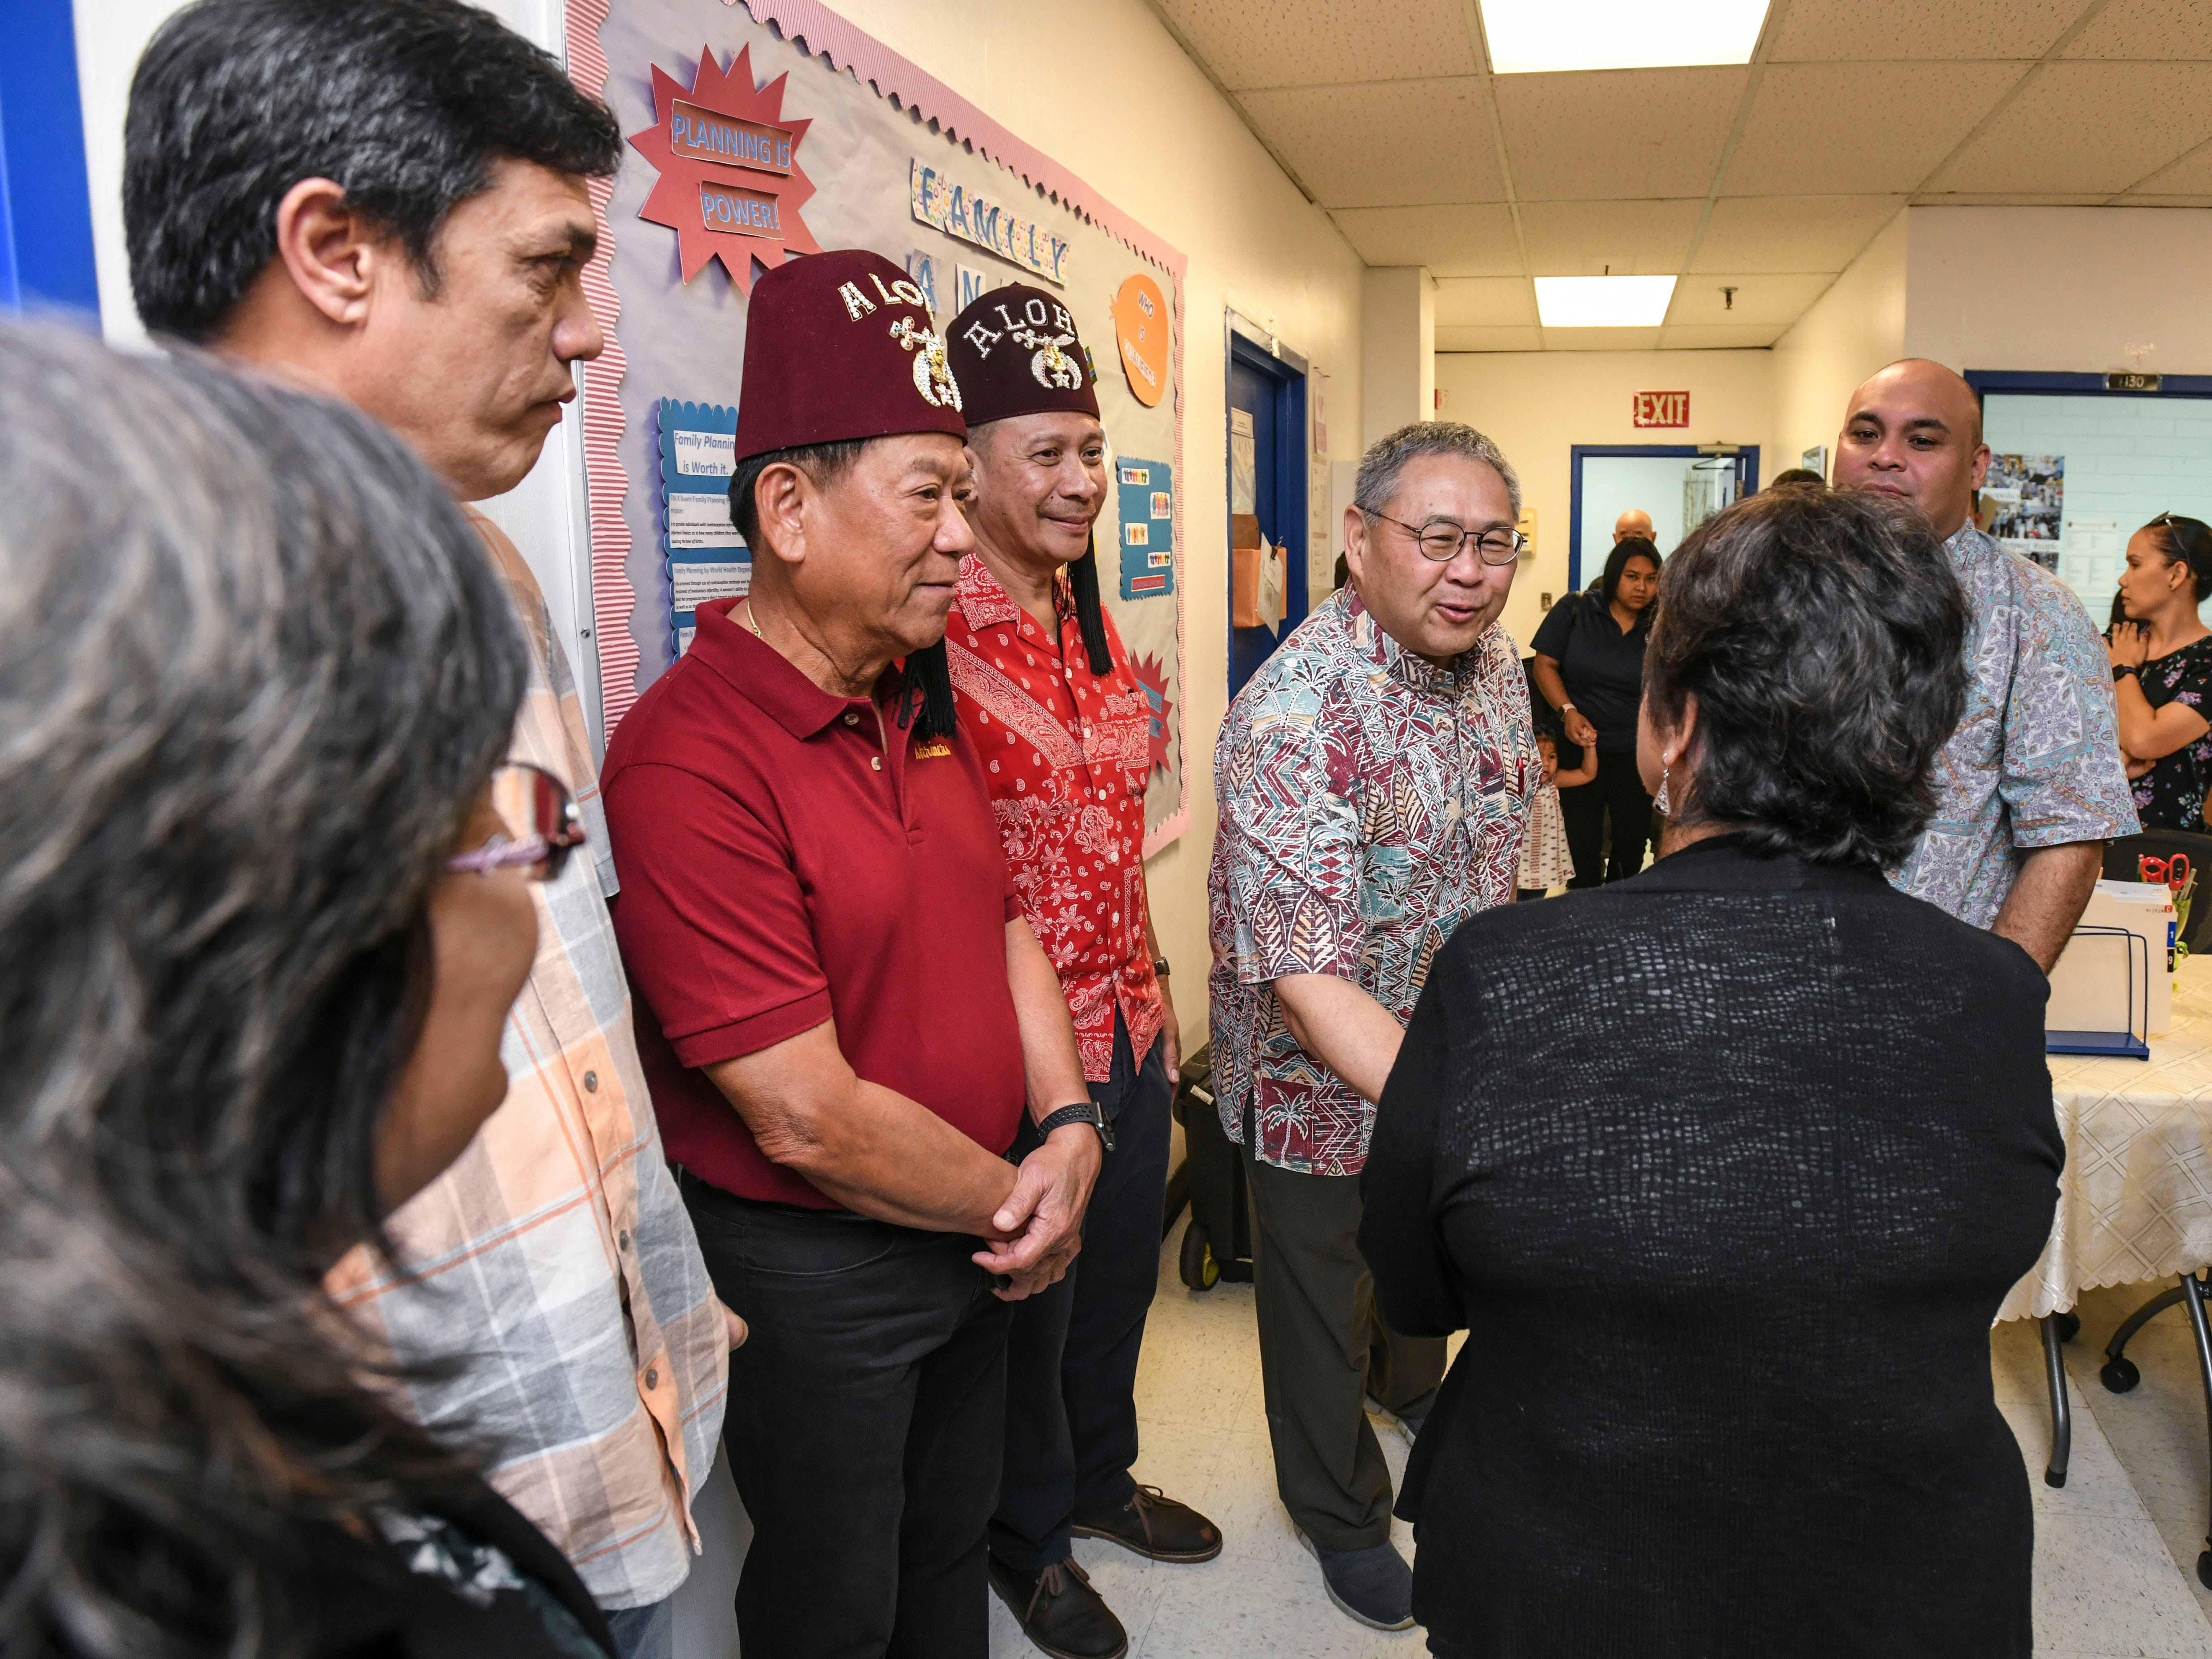 Dr. Craig Ono, Shriner's Hospital for Children chief of staff, is greeted by Gov. Lou Leon Guerrero and Lt. Gov. Josh Tenorio, during their visit to the Department of Public Health and Social Services in Mangilao on Wednesday, Feb. 13, 2019. Ono, who is conducting a five-day medical outreach at the center, is hoping to see and treat about 200 of the island's younger population during his visit, Sandy Zukeran, outreach coordinator said.